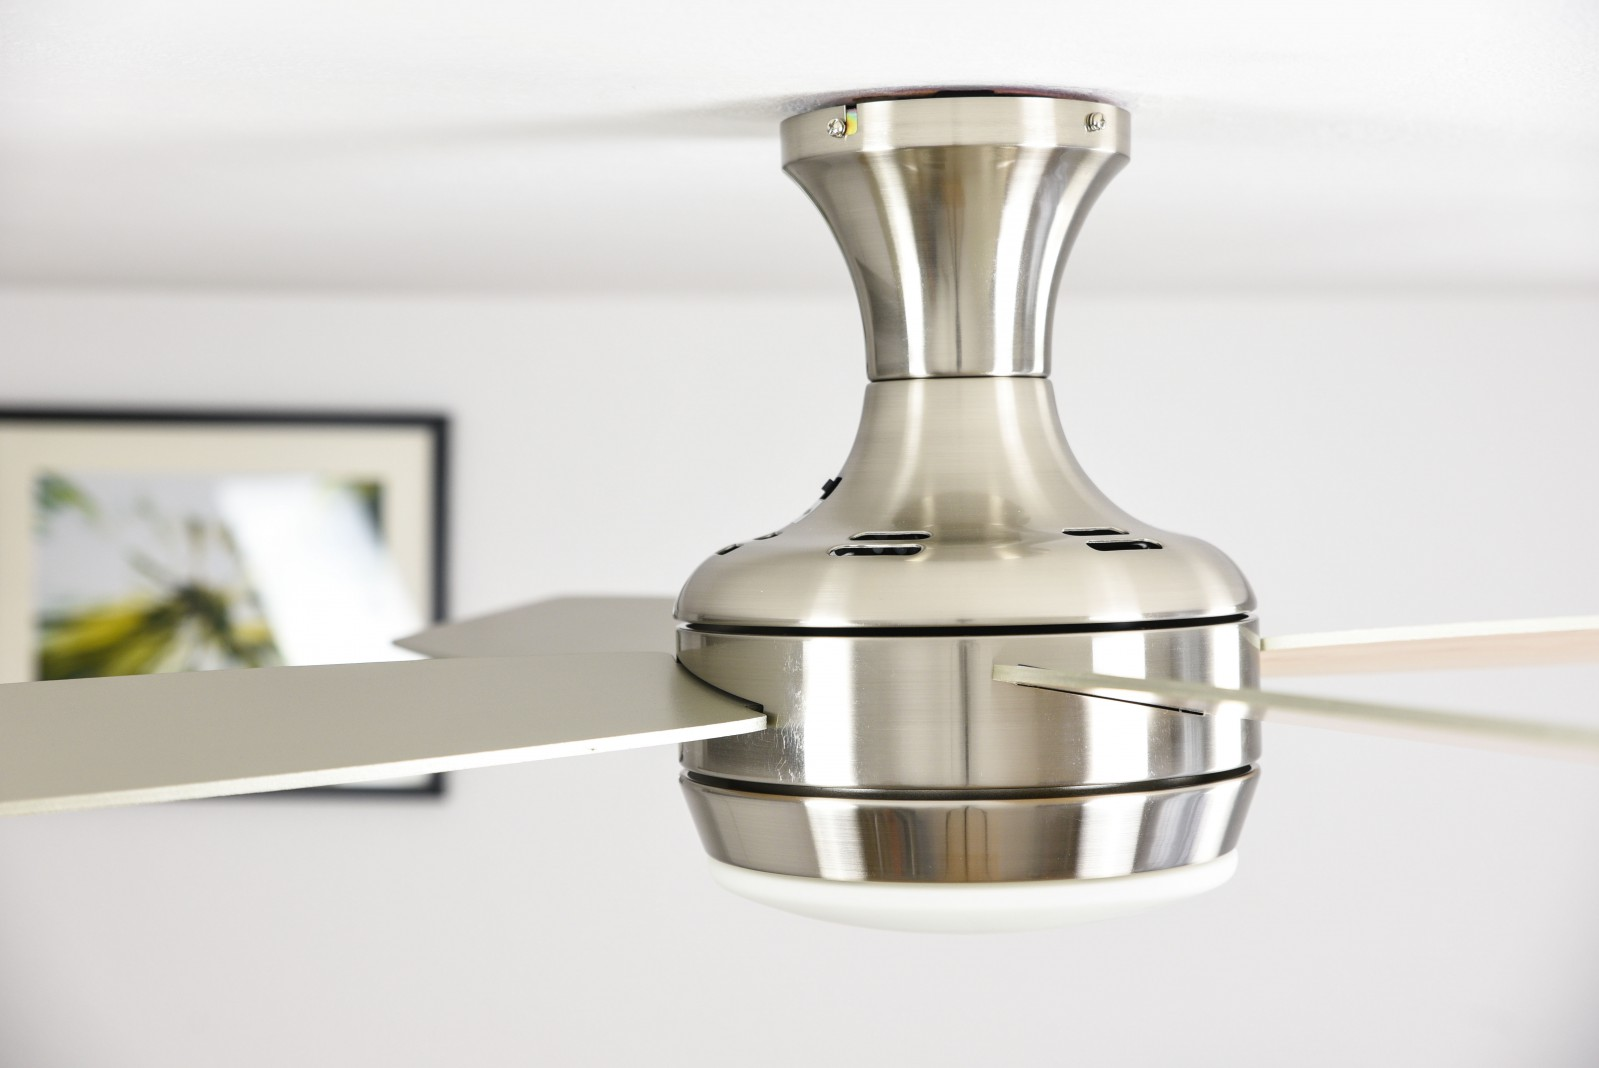 Saturn ceiling fan